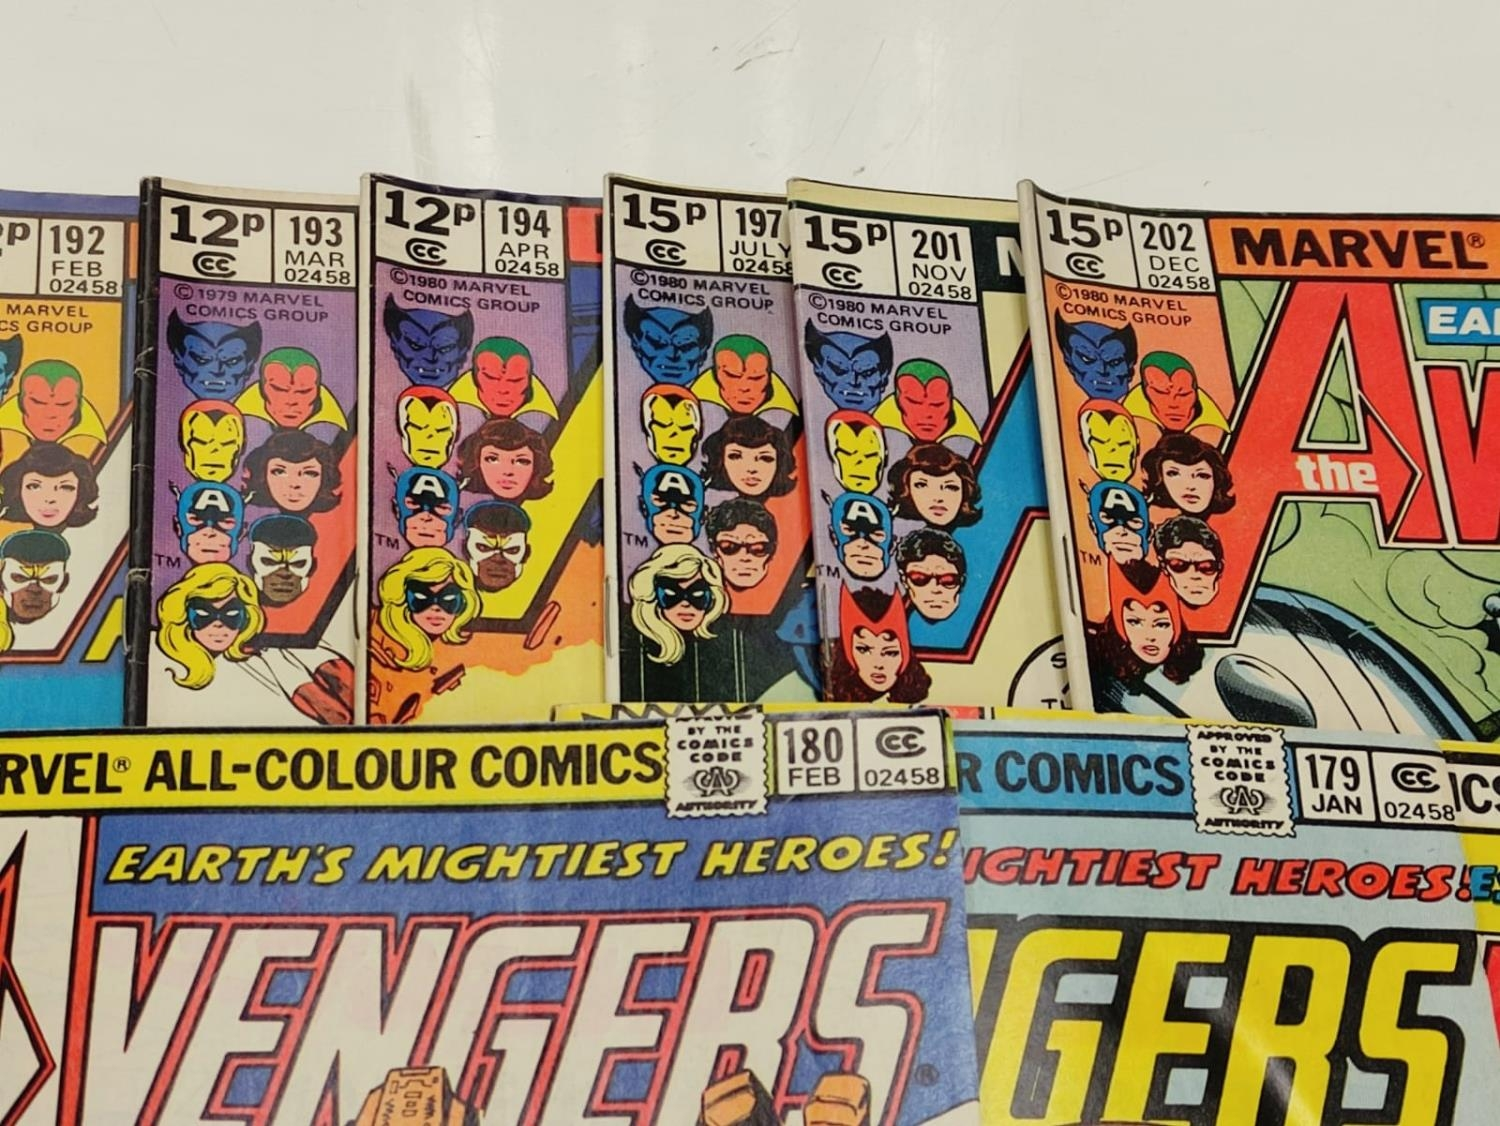 17 editions of Vintage Marvel 'The Avengers' comics in very good condition. - Image 5 of 12